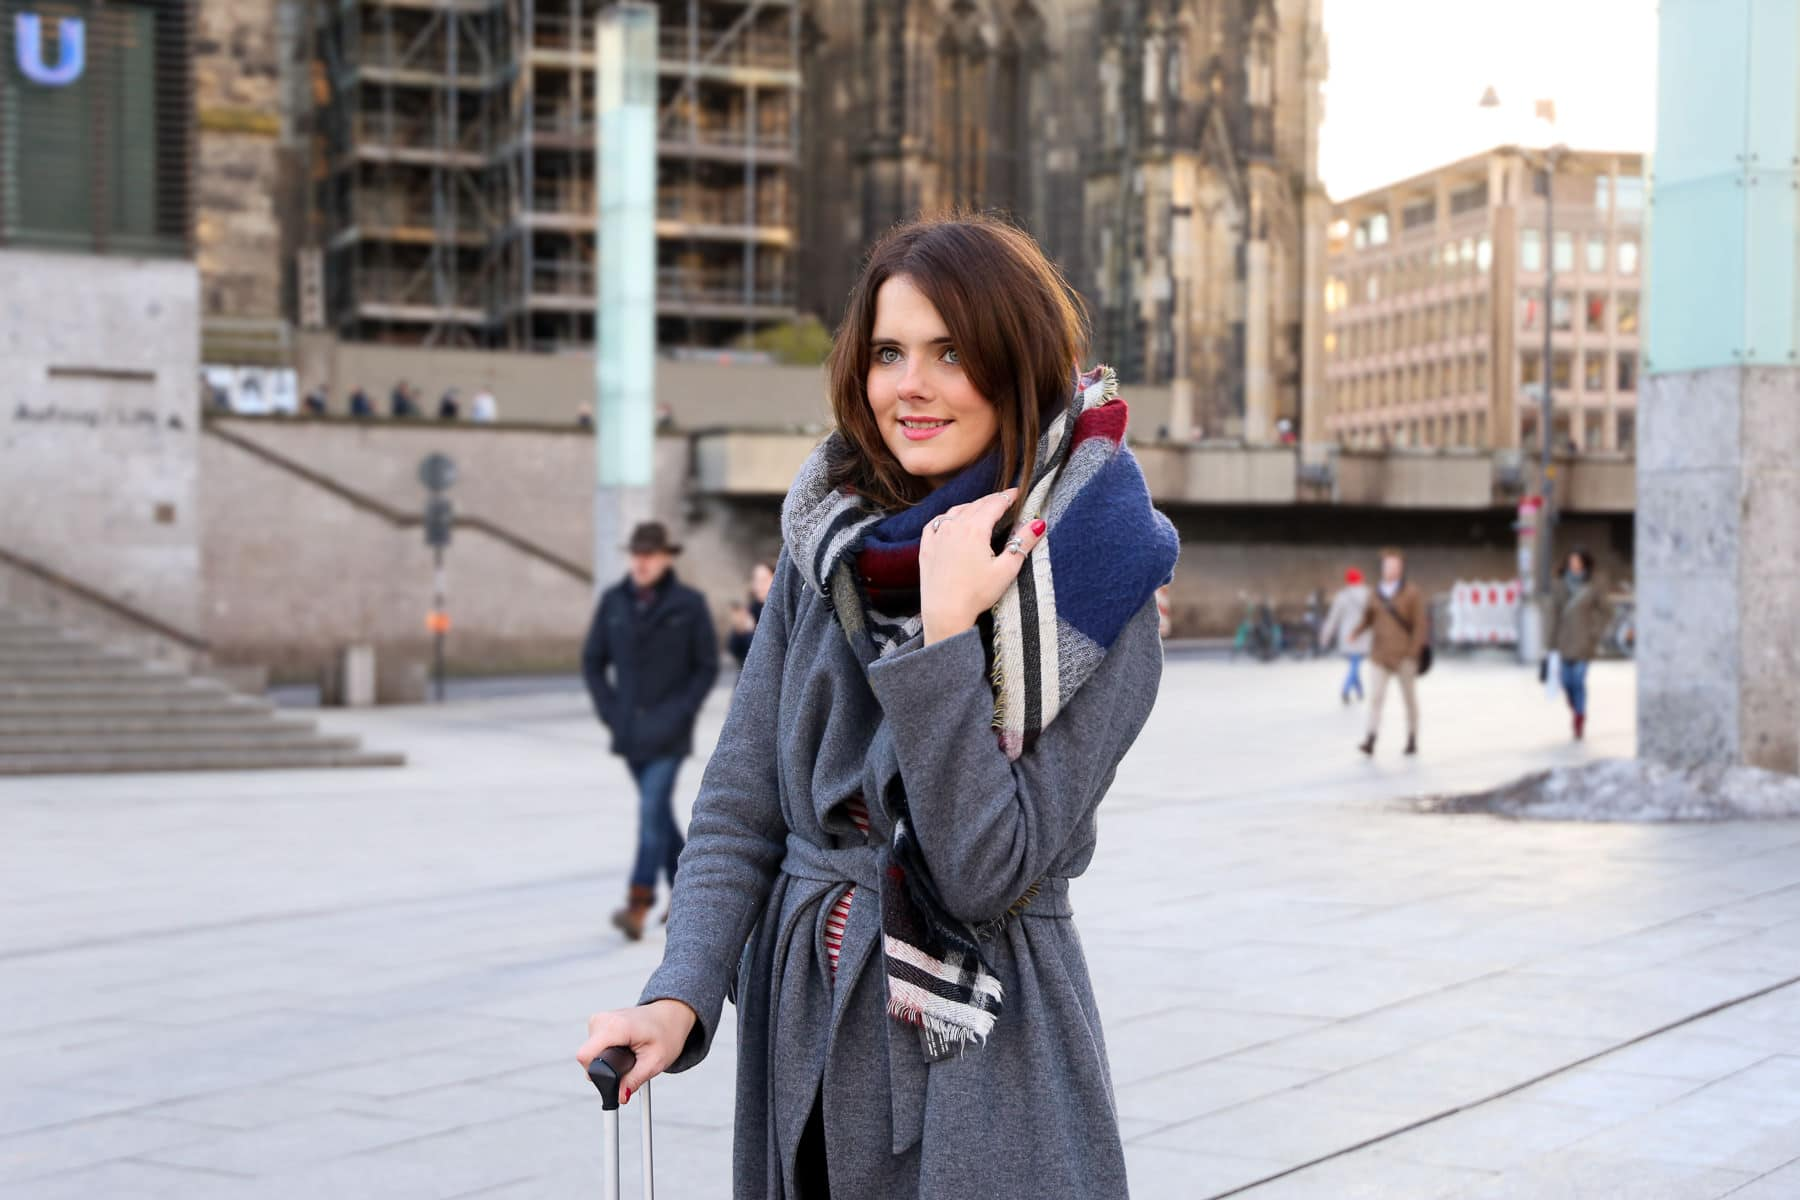 Travel Fashion Look am Kölner Dom: Grauer Mantel & roter Koffer